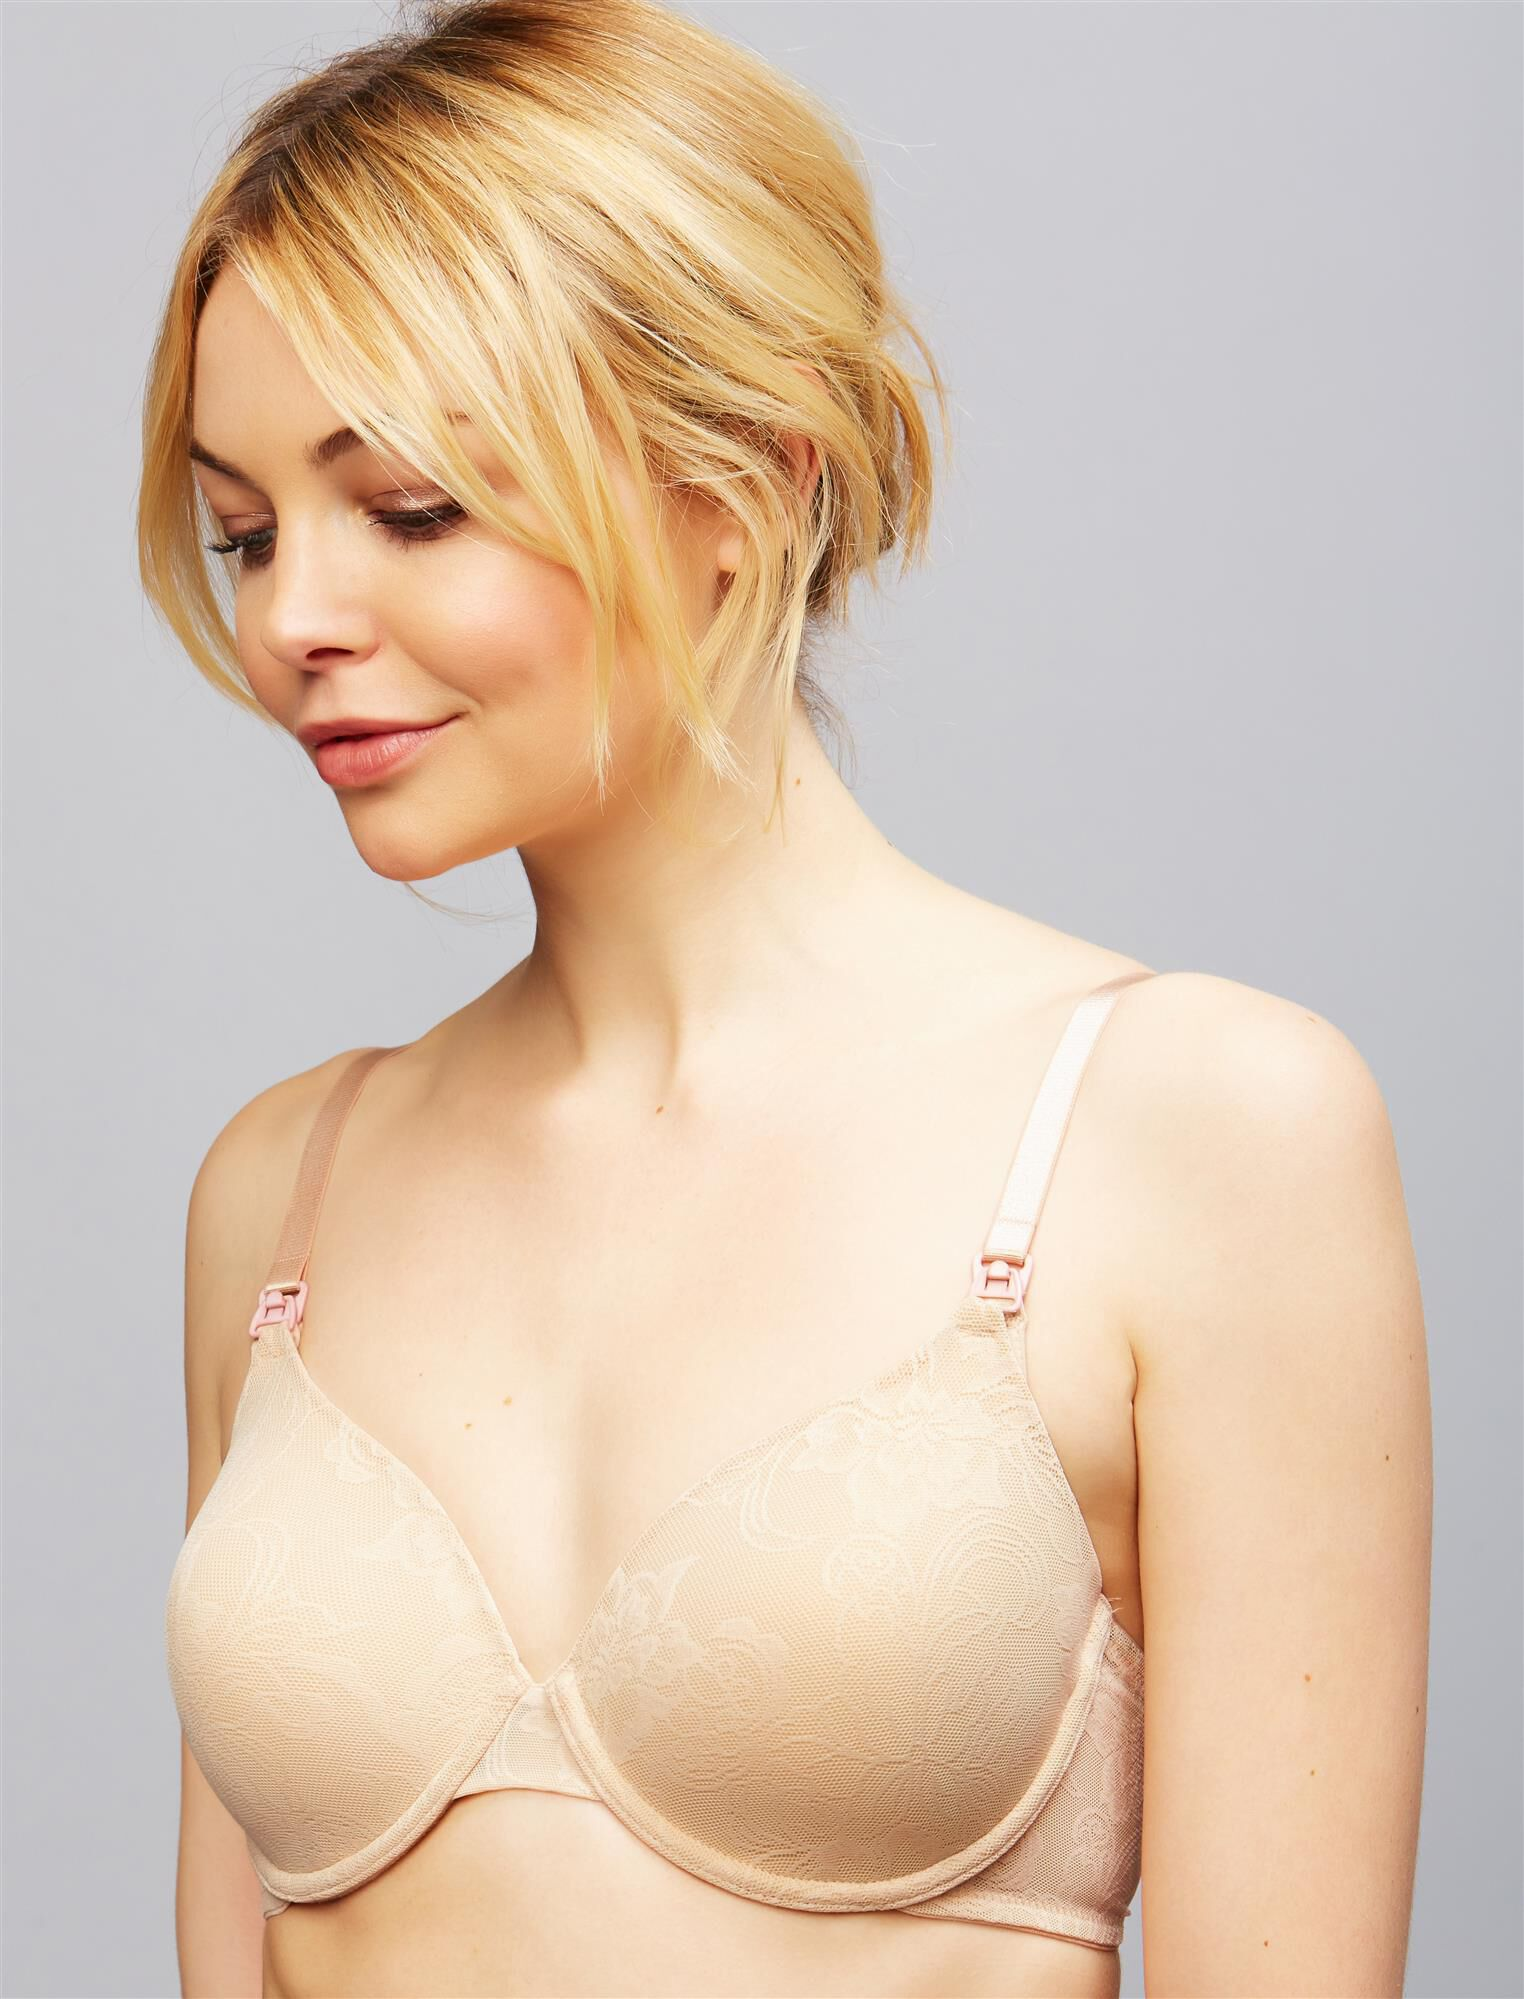 Natori Private Luxuries Full Coverage Lace Nursing Bra- Nude